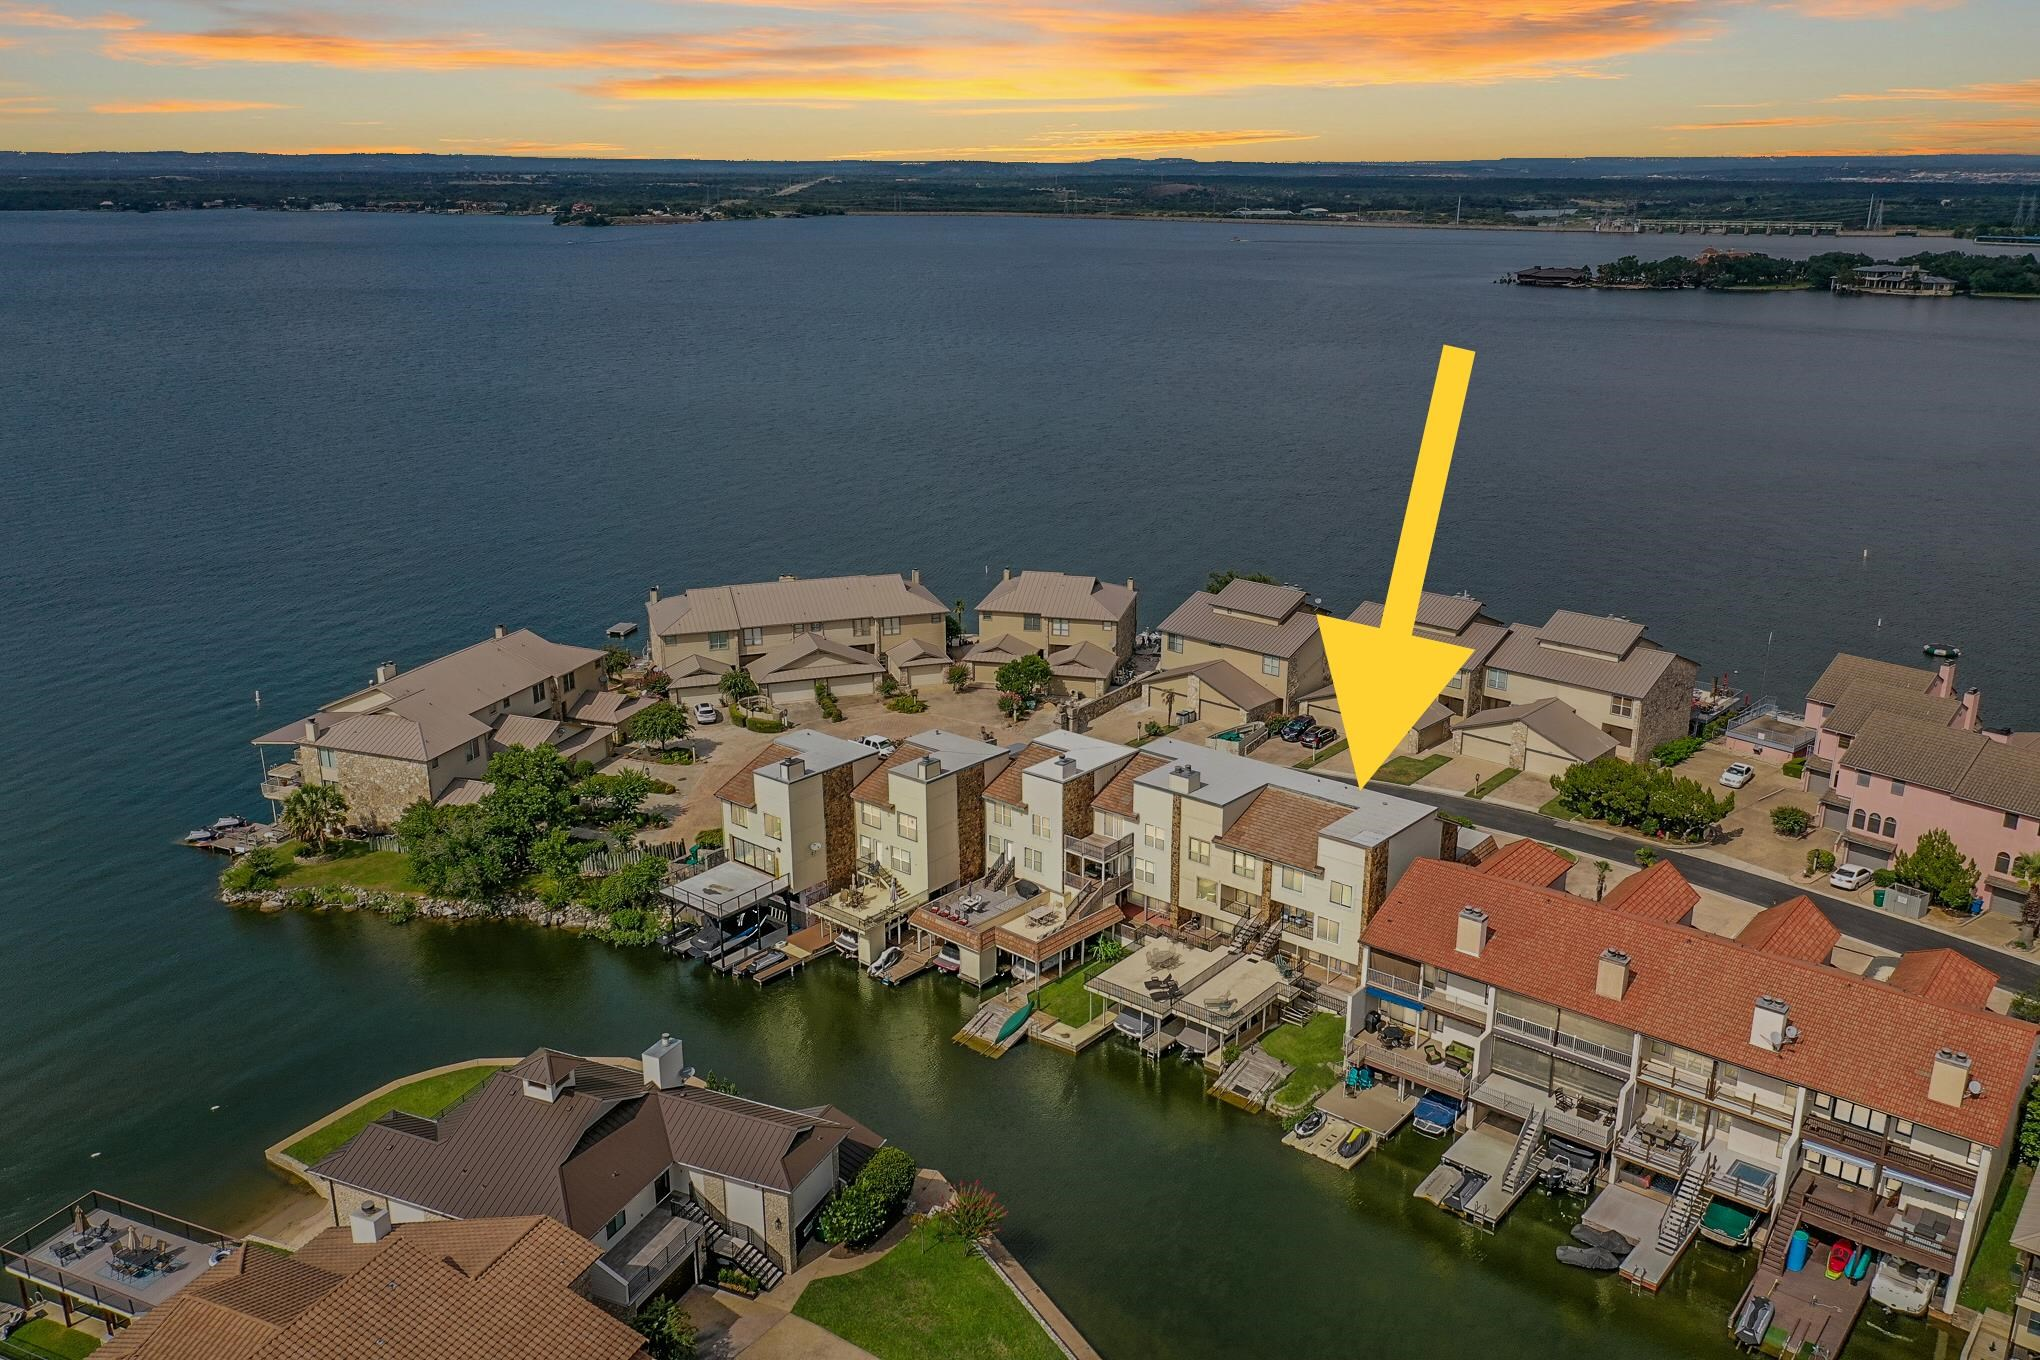 Lake LBJ Luxury Townhome:  Picture perfect waterfront townhome centrally located in the heart of Horseshoe Bay, is ideal as a full-time residence, a weekender, or investment property!  The foyer of this meticulously remodeled get-away welcomes you home with up-to-date finishes, open water views, and a floor plan ideal for family and guests.  Step up to the main living area where the great room presents glorious views to the cove and beyond to big, open water.  The efficient kitchen's pearl white cabinets, smoke colored counters, and gleaming stainless appliances make entertaining a breeze.  Unwind inside or step out to the deck to relax after a hard day on the lake or links. Three quiet bedroom suites are tucked one floor above where the master brags water views and an en-suite bath with a large walk-in shower.  Two additional guest rooms each boast en-suite baths, making it easy to accommodate family & friends. At lake level, the bonus room offers countless possibilities with a full bath and cedar-lined sauna.  Step outside to your covered boathouse and jet ski ramp where many of the Resort's amenities are a quick ride across the bay.  Spend summer afternoons fishing or sunbathing from your deck, take a dip in the water, or embark upon a day on the lake.  As evening falls, enjoy your favorite cocktail as you count the stars and watch the moon glimmer over the quiet lake.